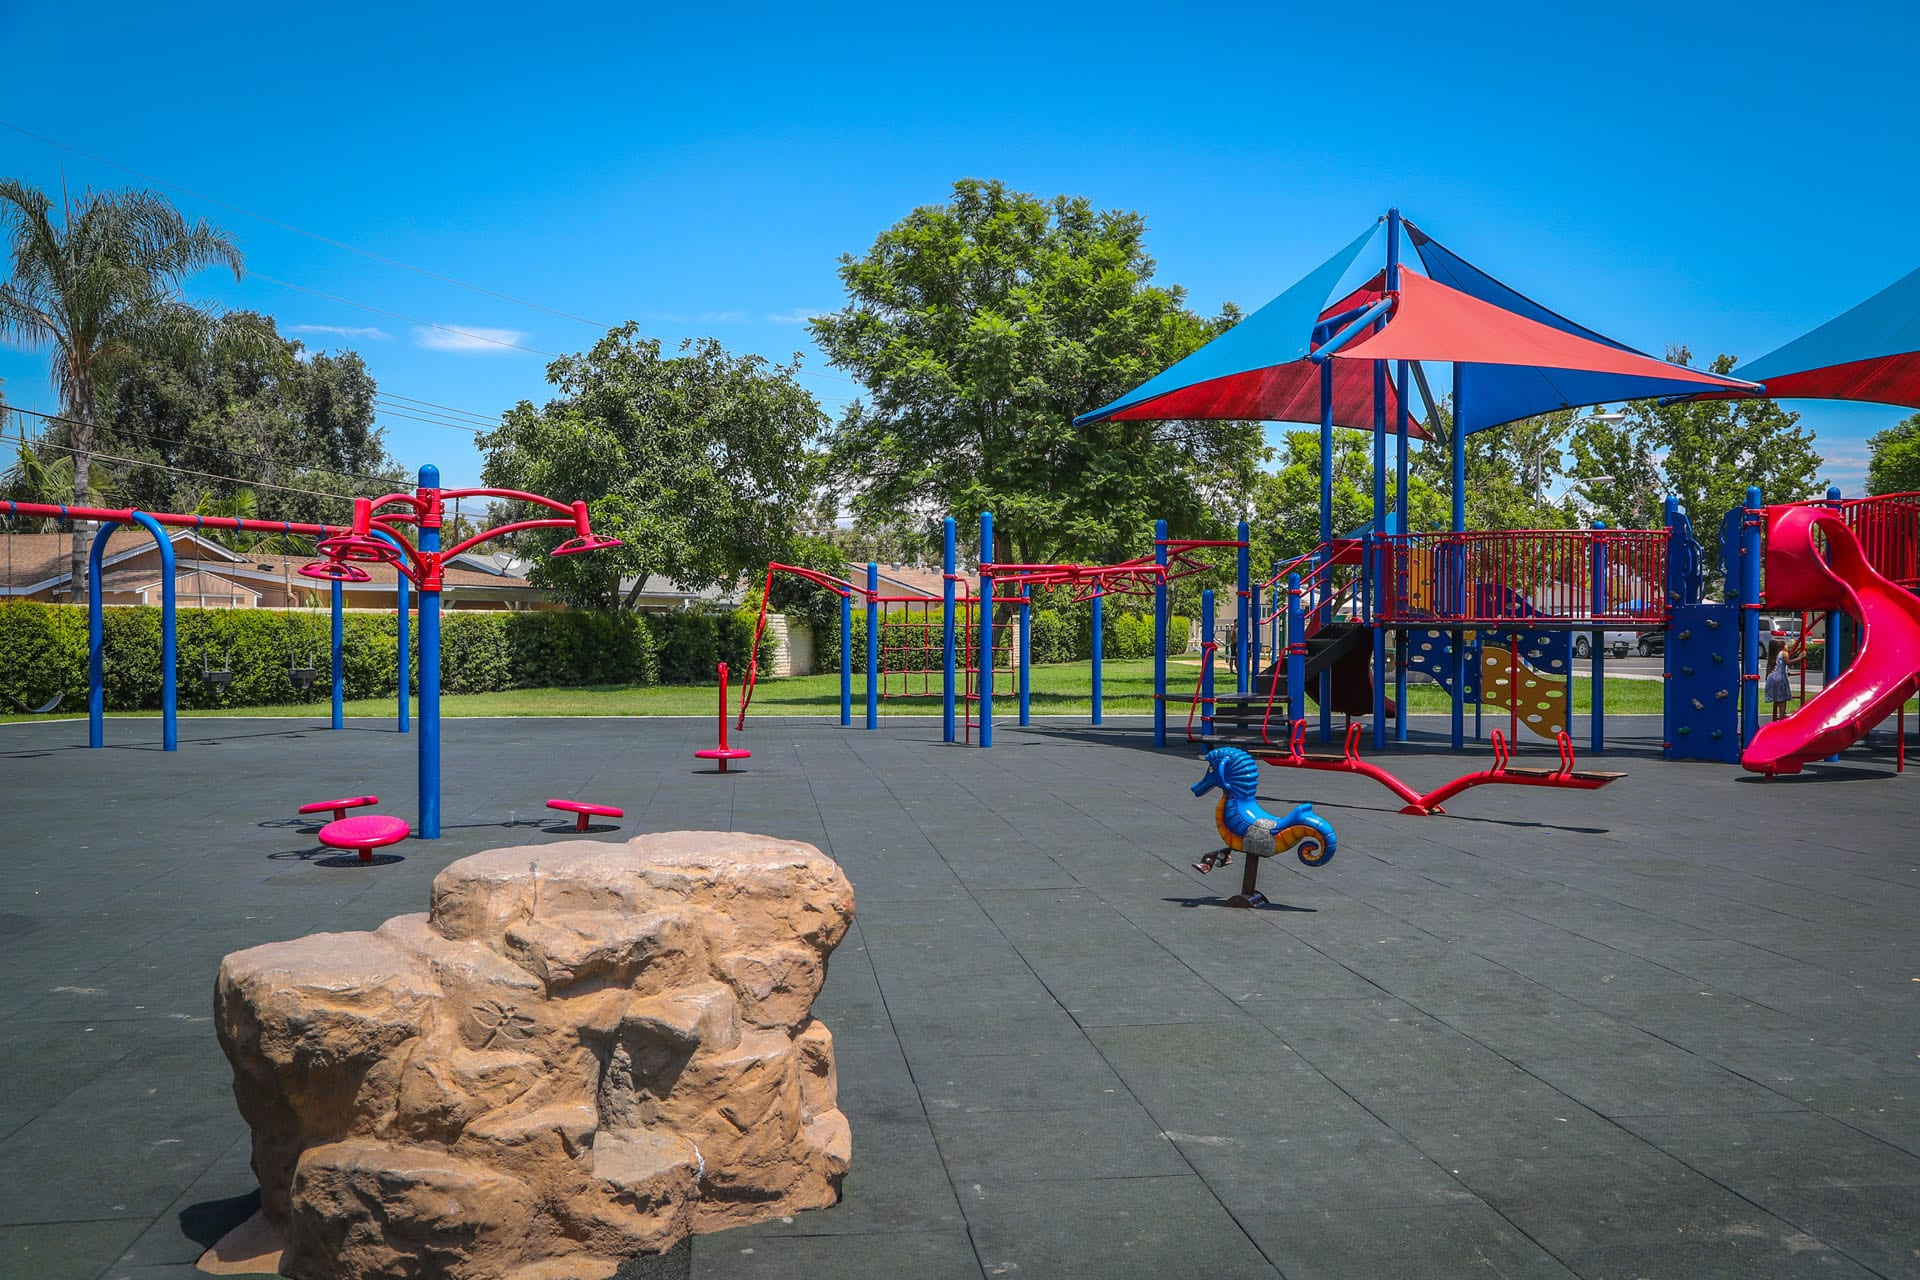 Playground with a small rock structure and jungle gym